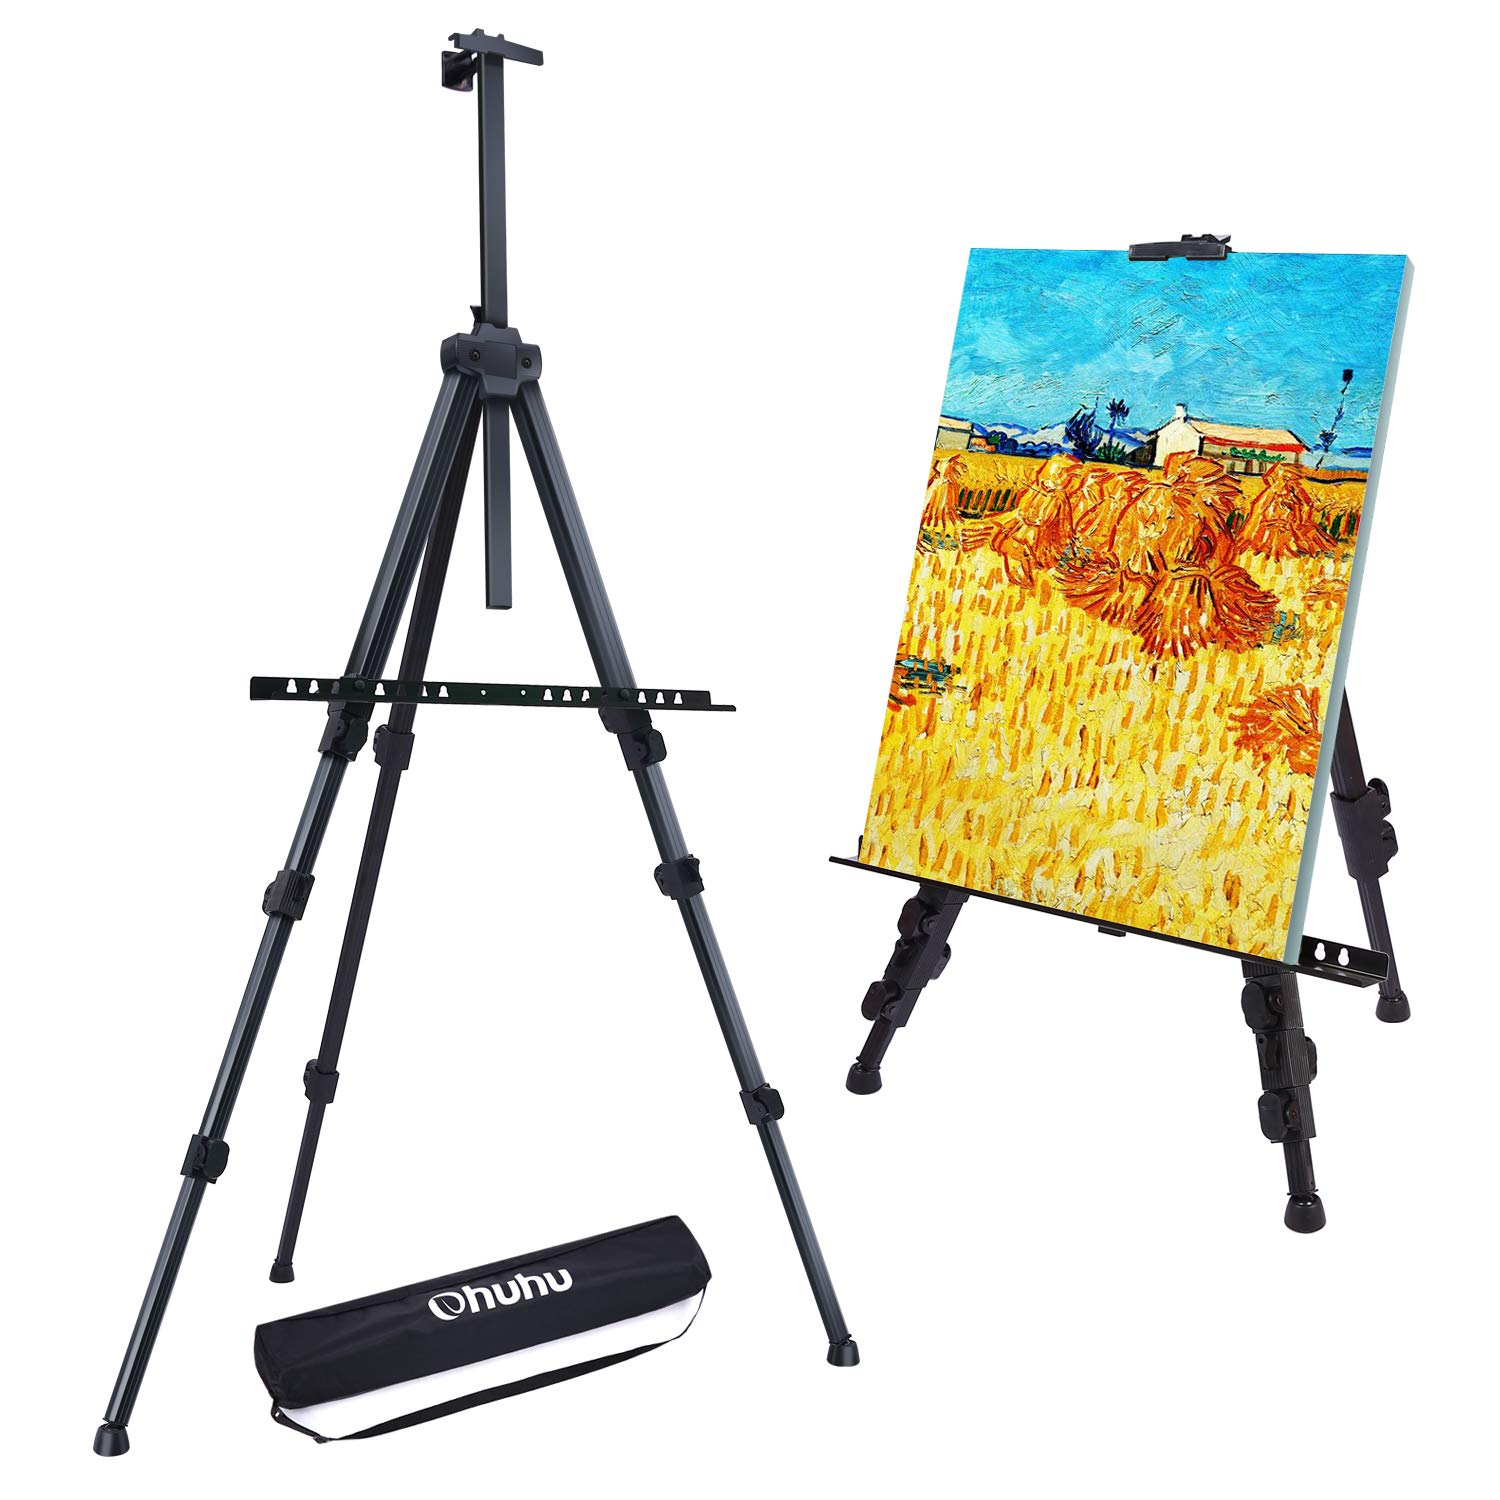 """Easel Stand, Ohuhu 72'' Artist Easels for Display, Aluminum Metal Tripod Field Easel with Bag for Table-Top/Floor/Flip Charts, Black Art Easels W/Adjustable Height 25-72"""" for Christmas Gifts"""